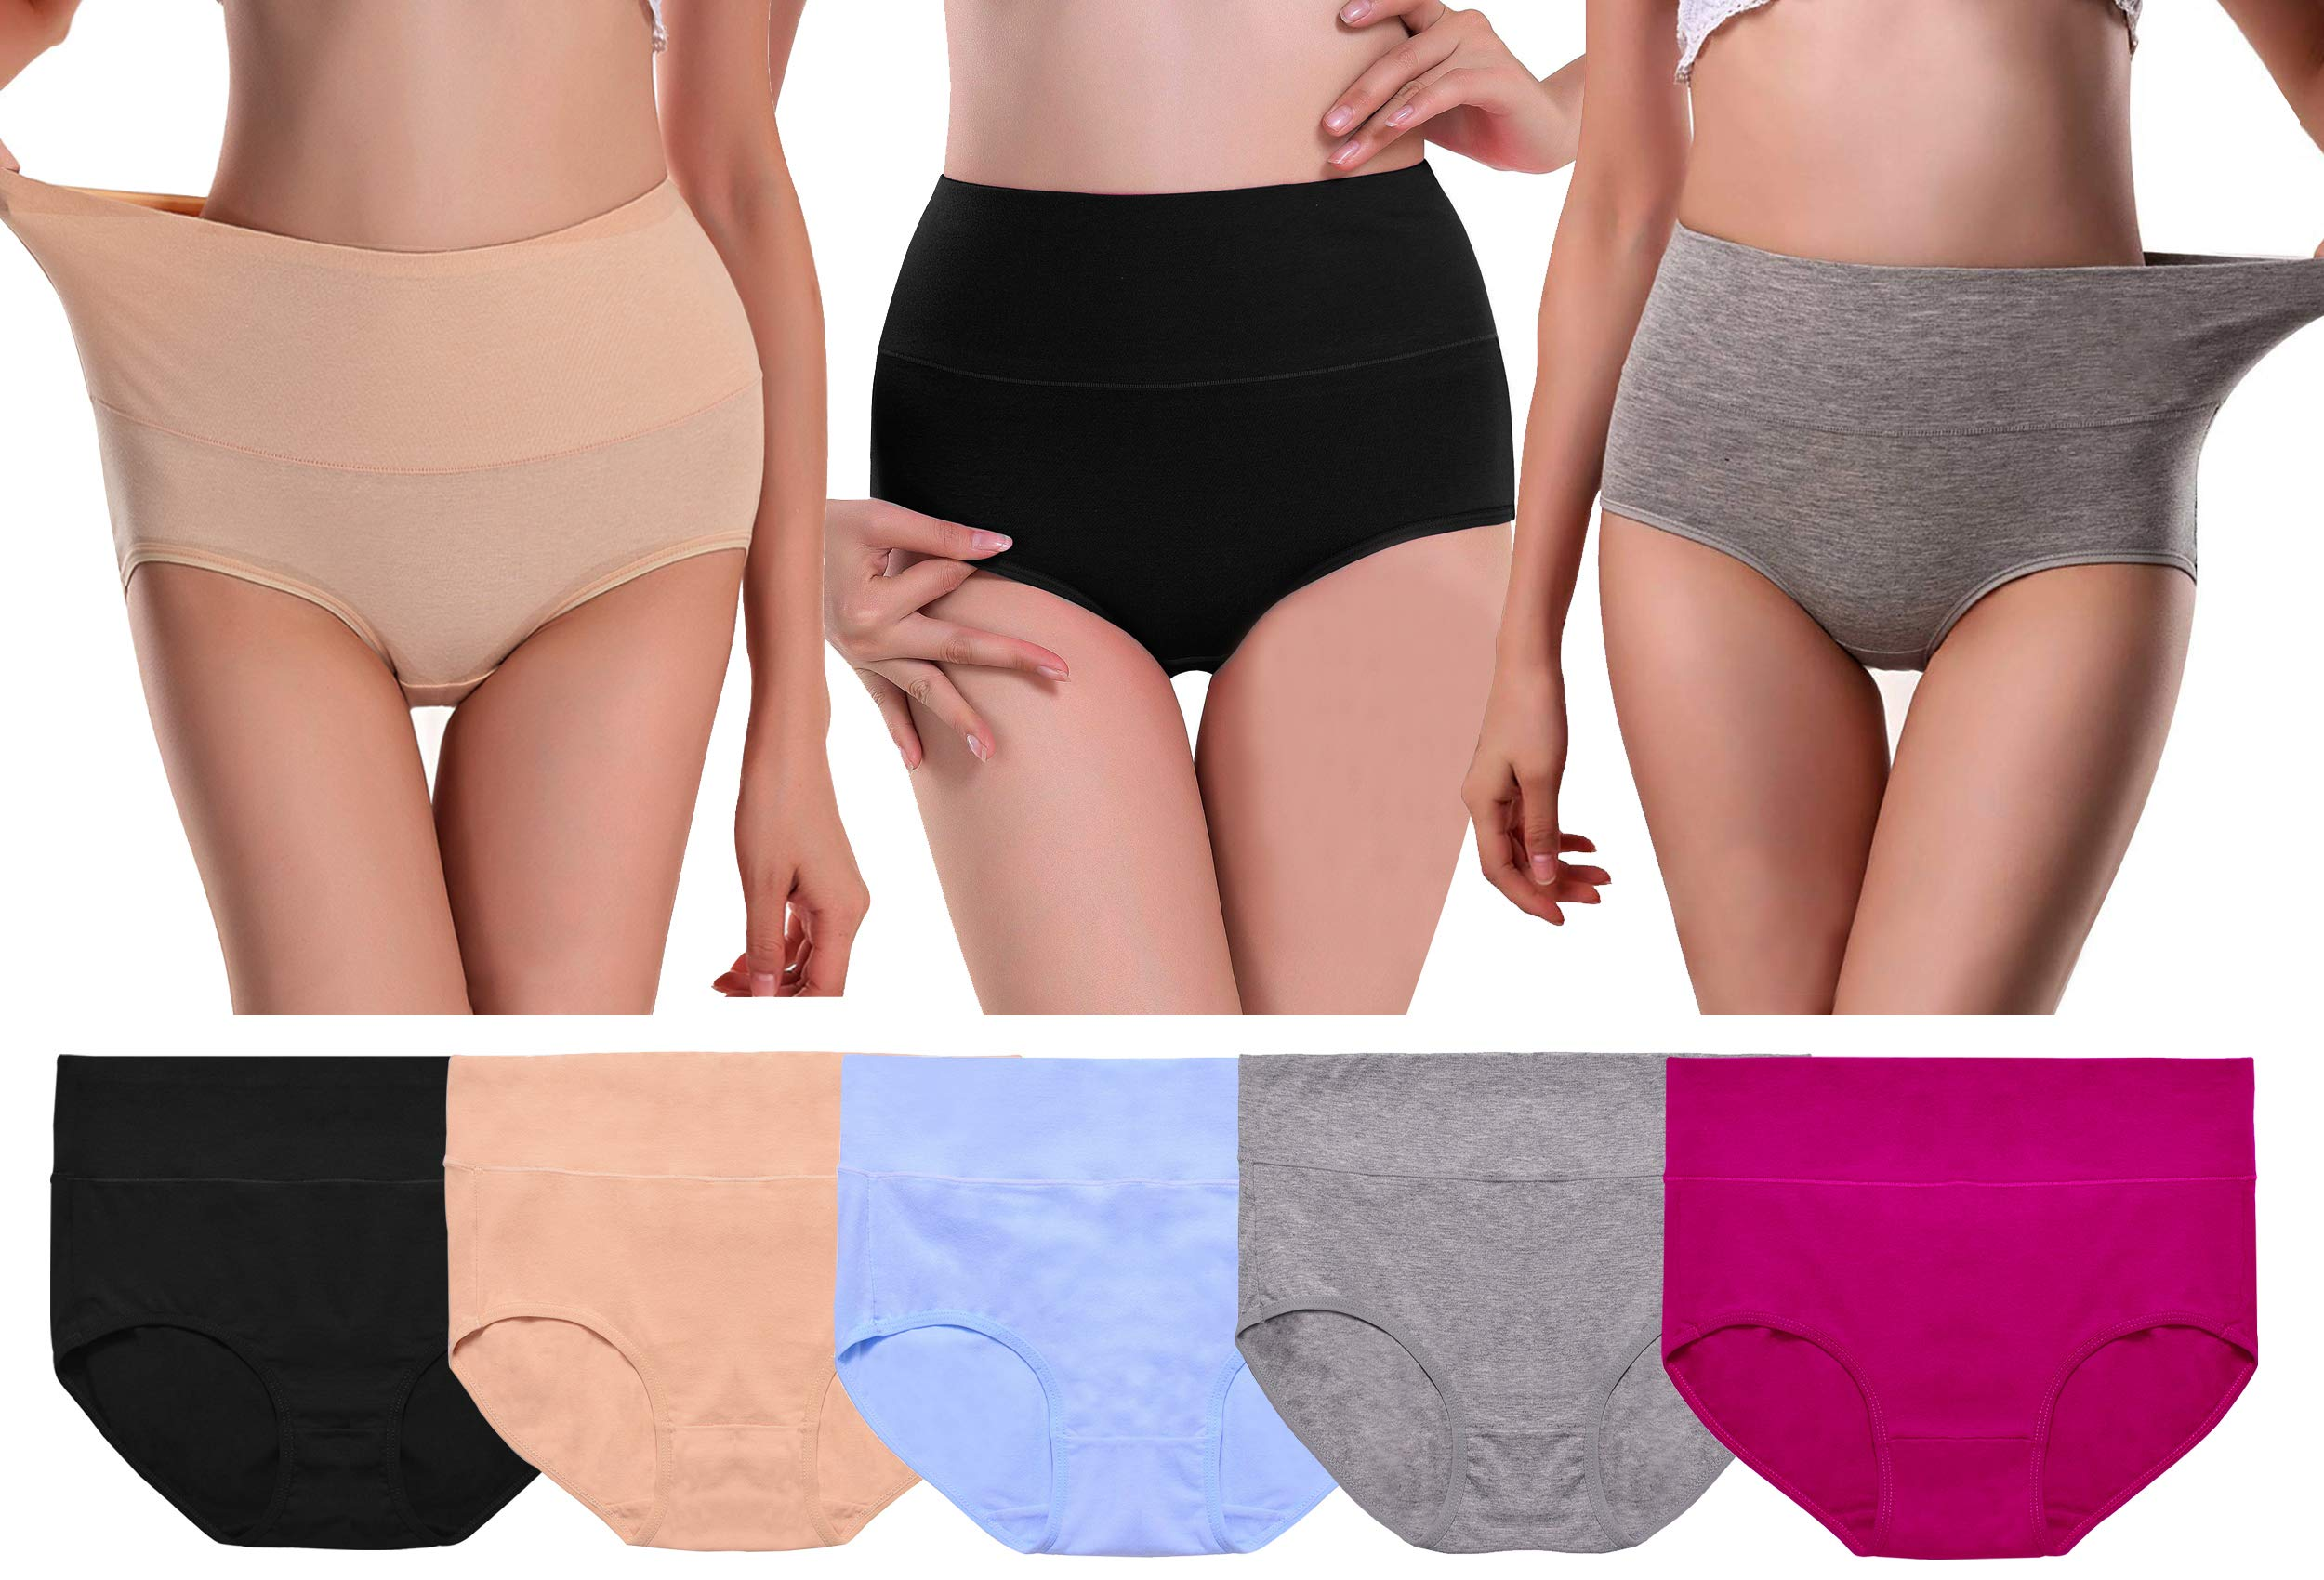 UMMISS Womens Cotton Underwear High Waist Full Coverage Soft Comfortable Brief Panty Multipack